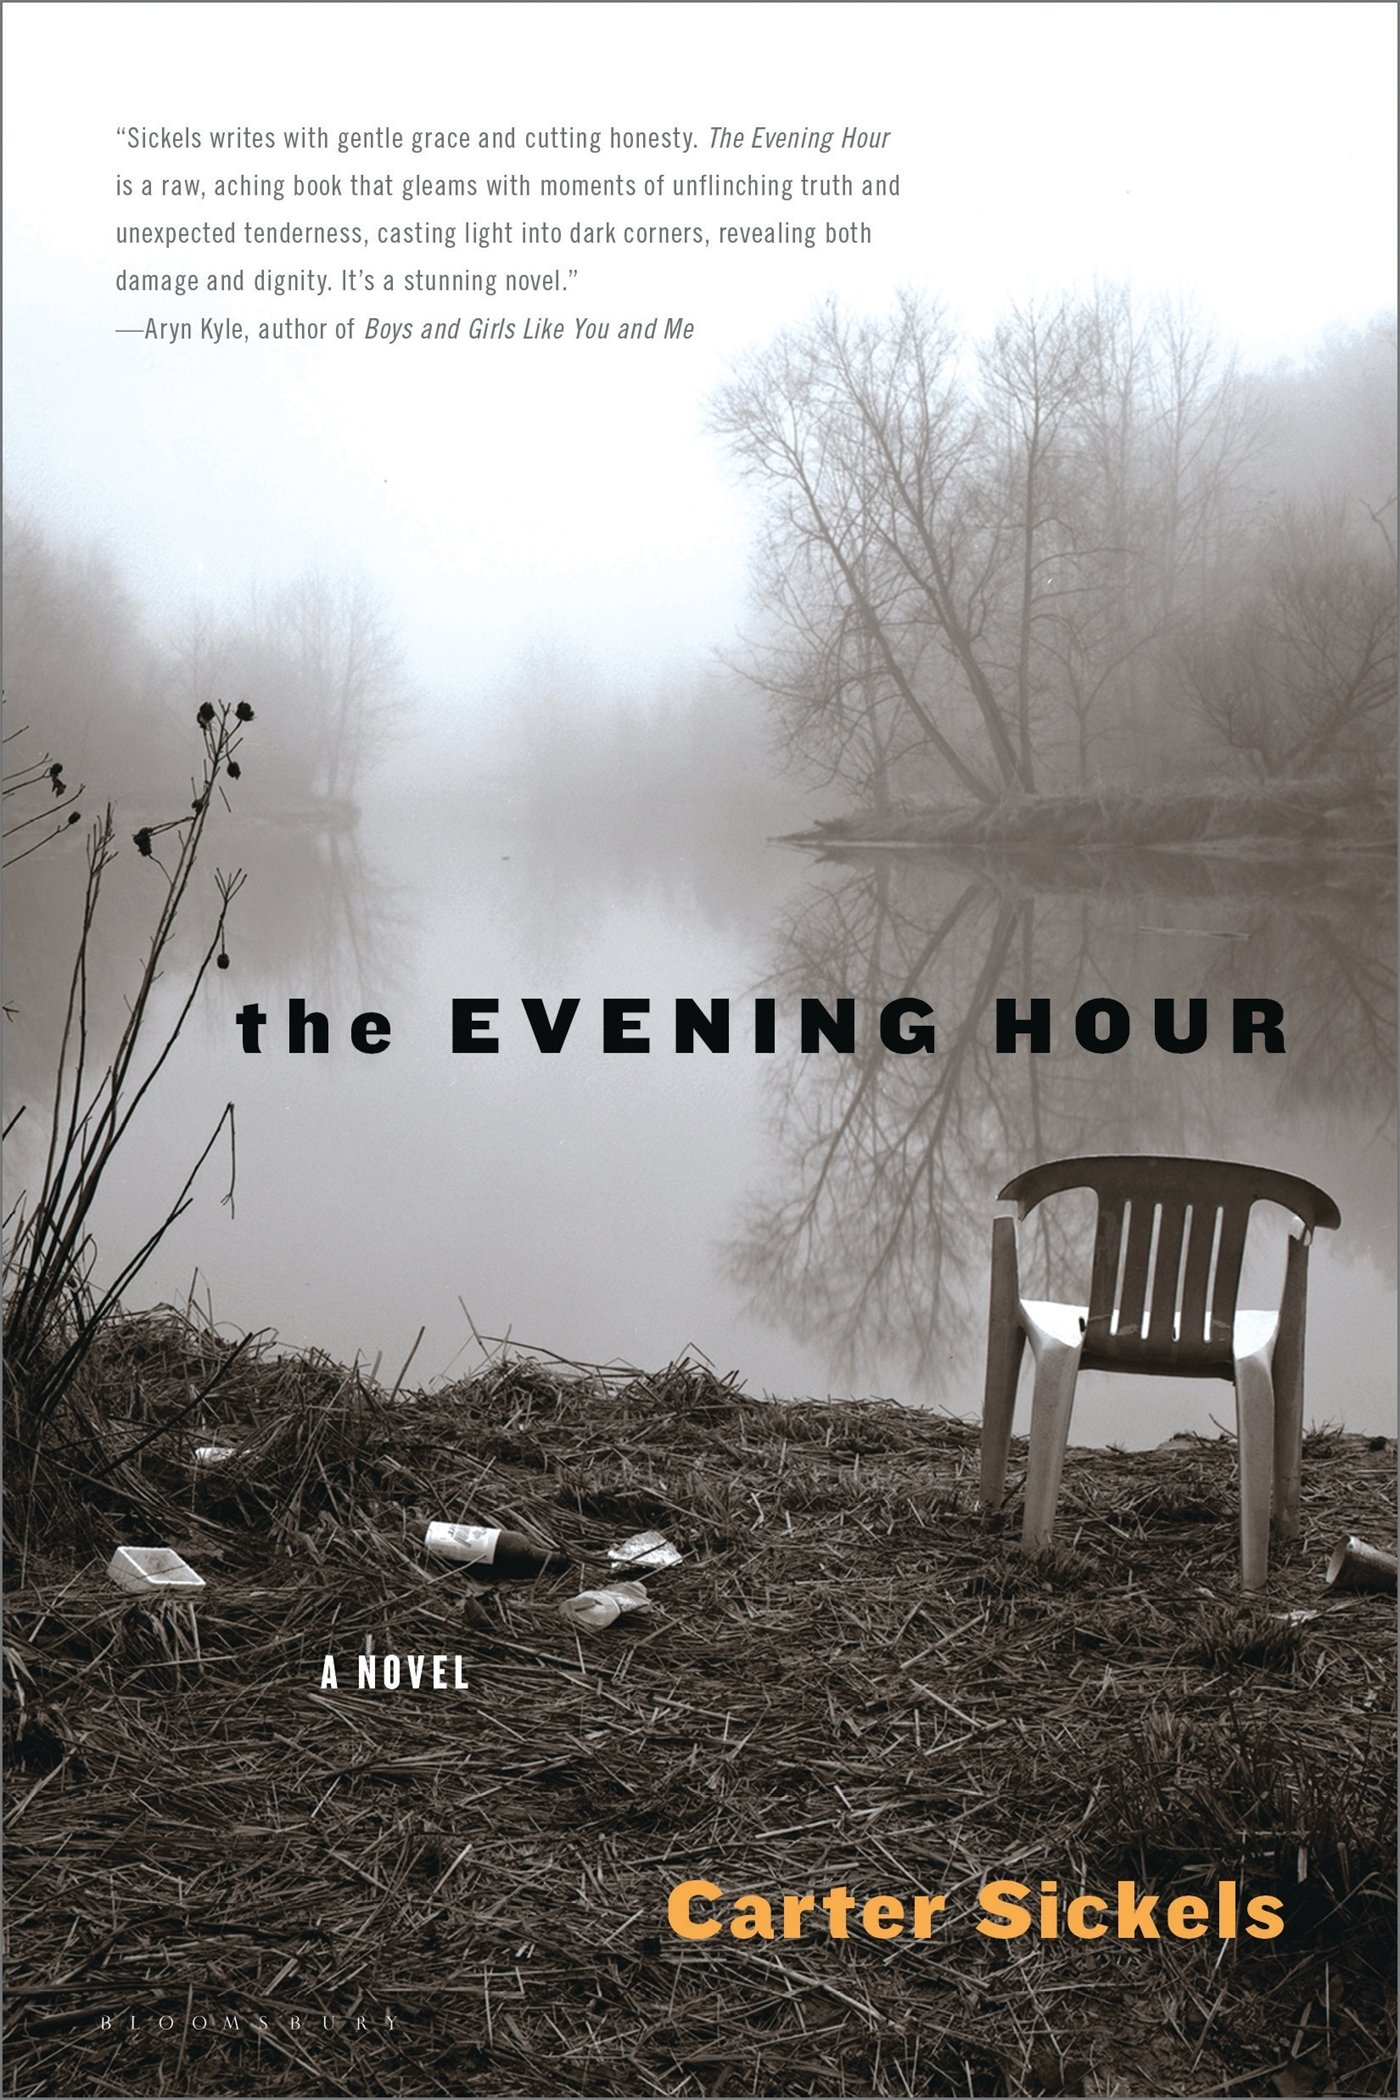 The Evening Hour: A Novel: Carter Sickels: 9781608195978: Amazon: Books